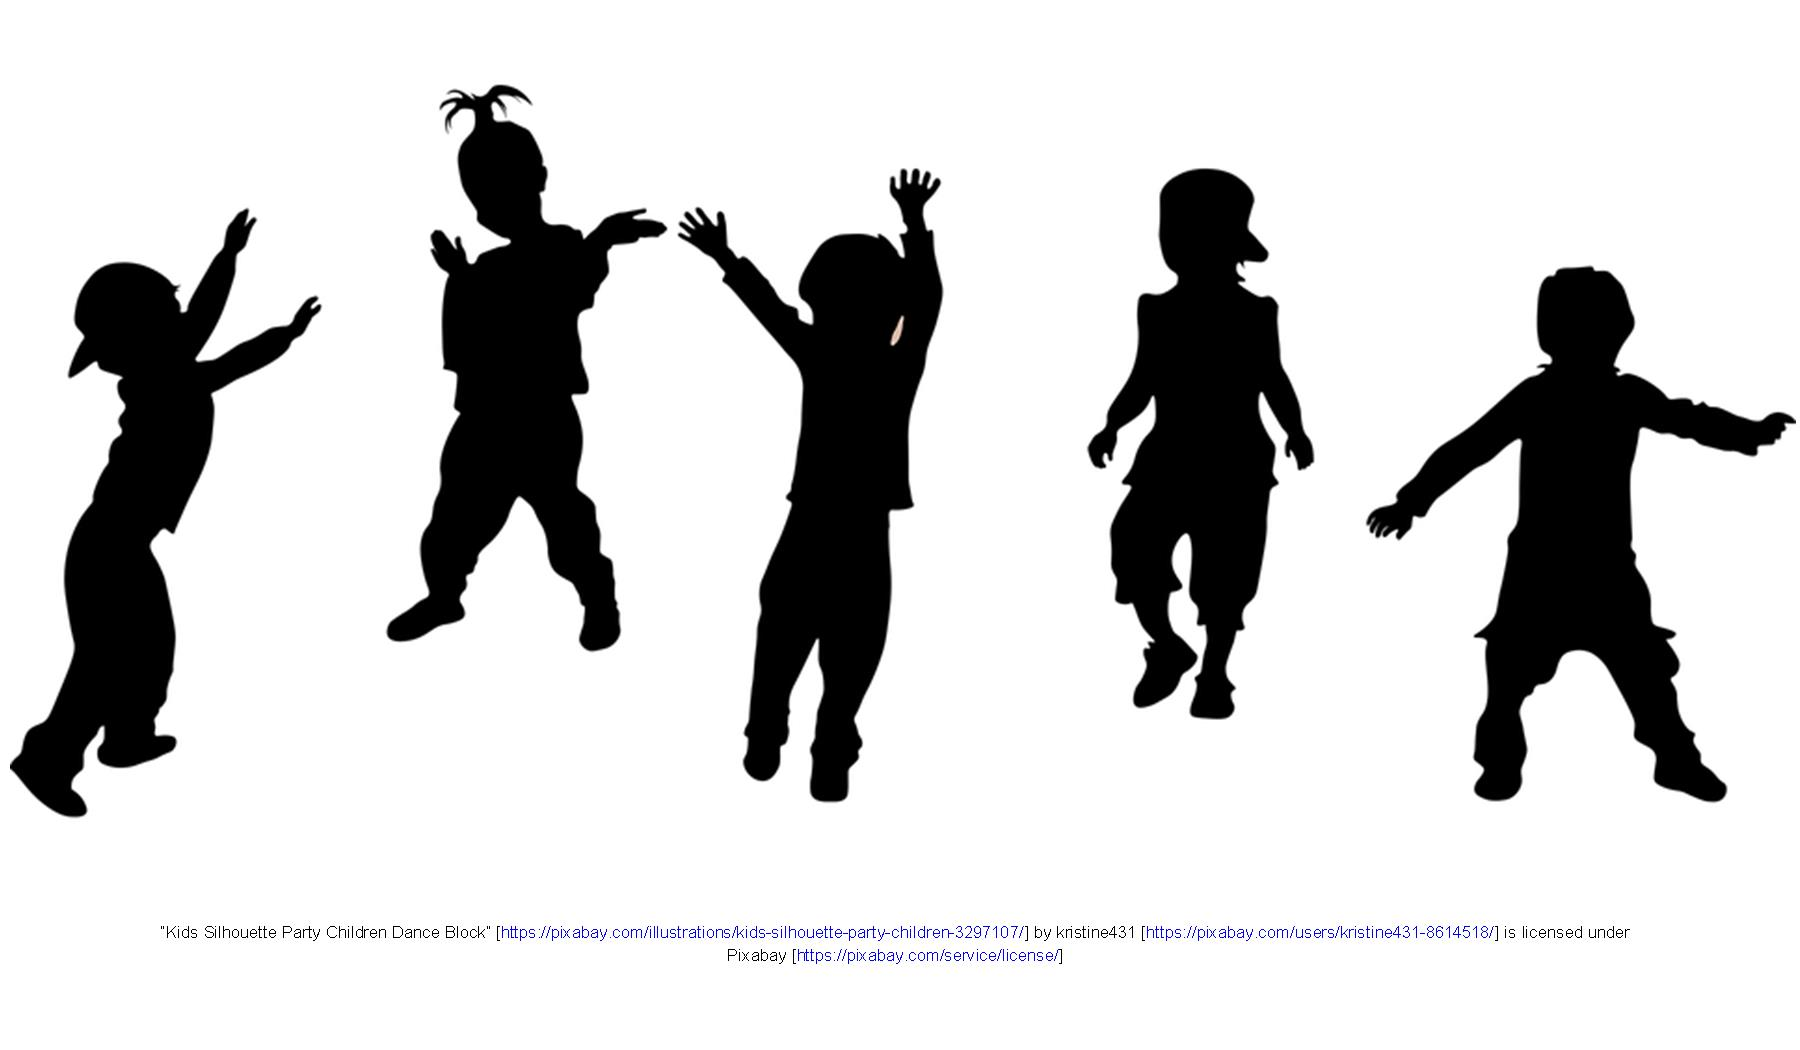 Silhouettes of children jumping and playing